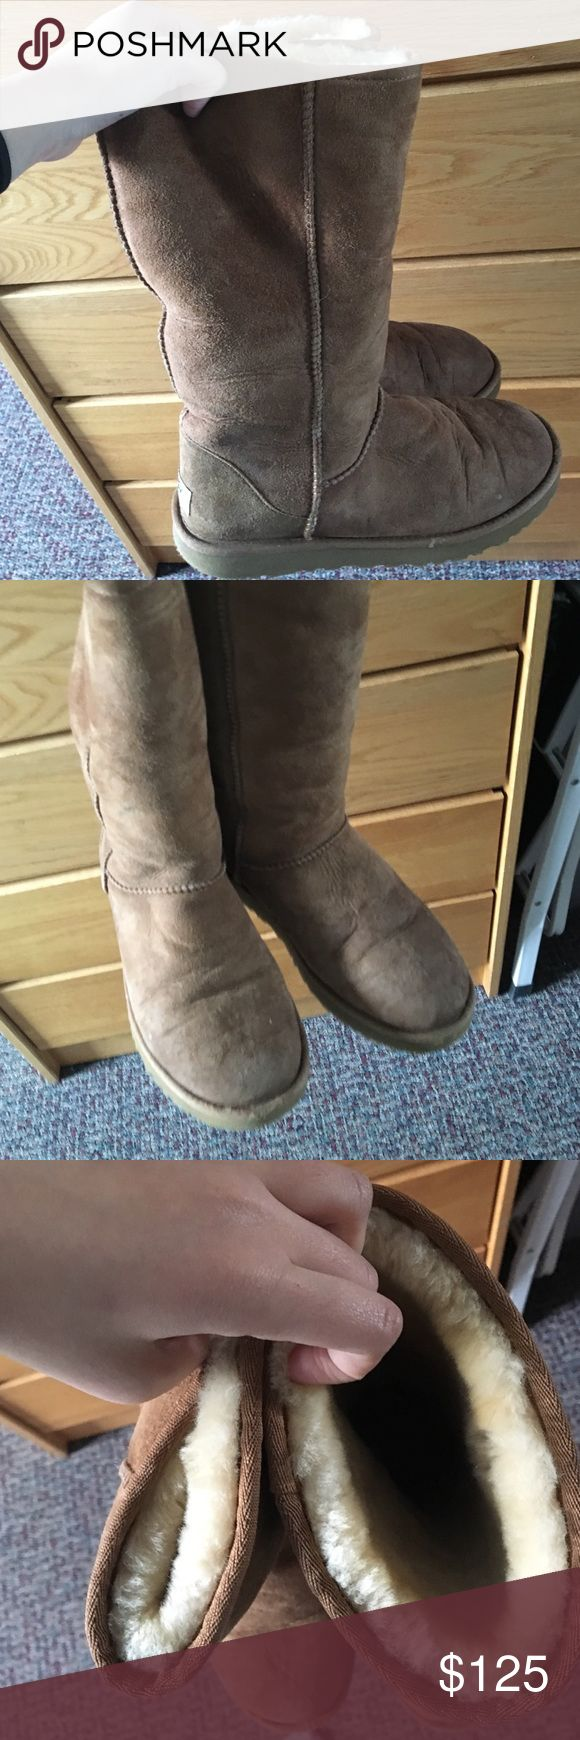 UGG BOOTS worn a couple of times but its still in very good condition! Doesn't smell and its still very clean!! Tall Classic Version! for people who love tall boots! UGG Shoes Winter & Rain Boots